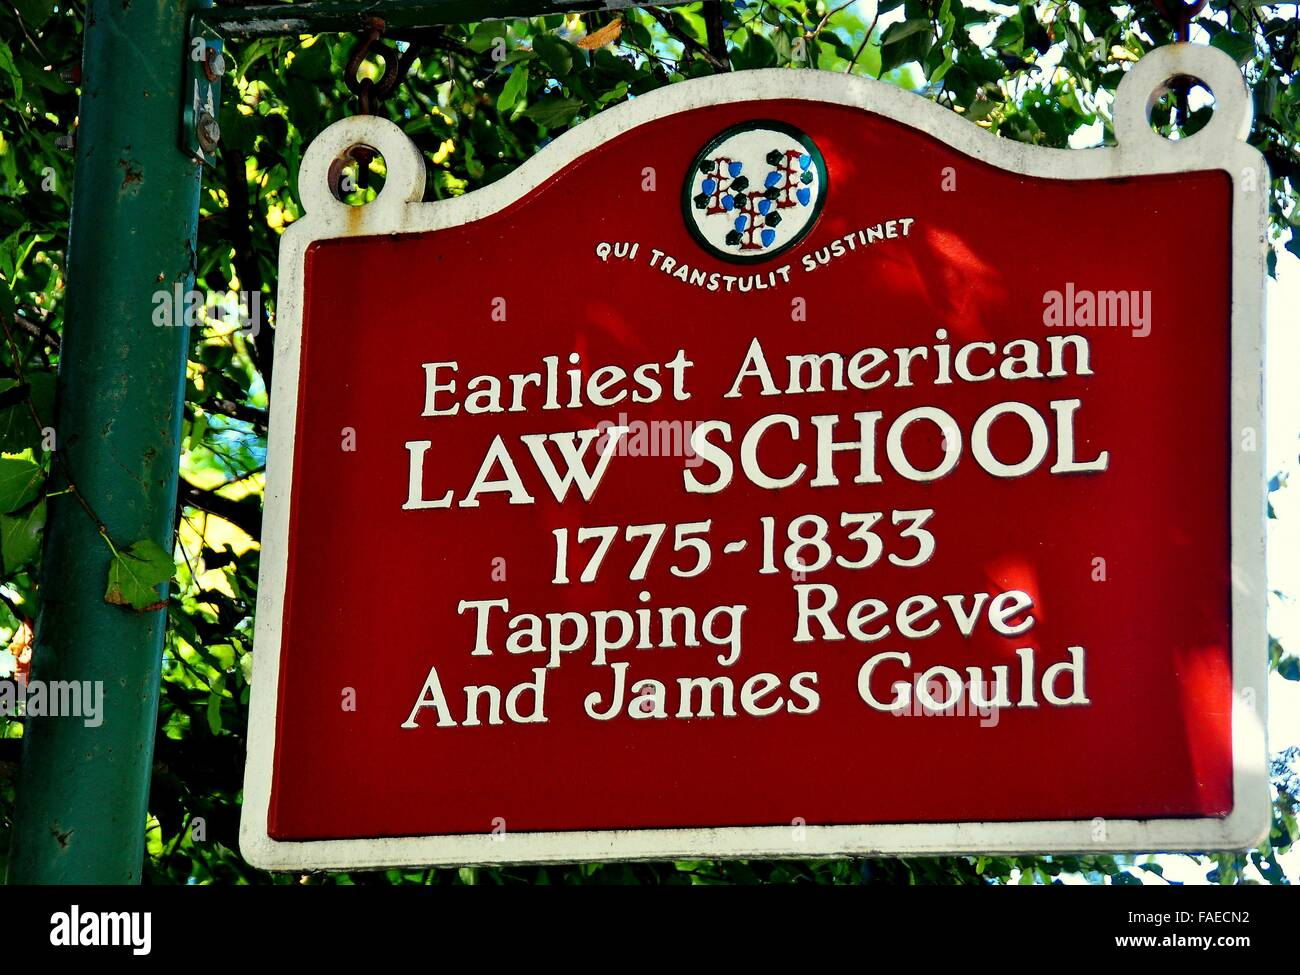 Litchfield, Connecticut:  Sign at the historic 1775-1833 Tapping Reeve and James Gould Law School * - Stock Image